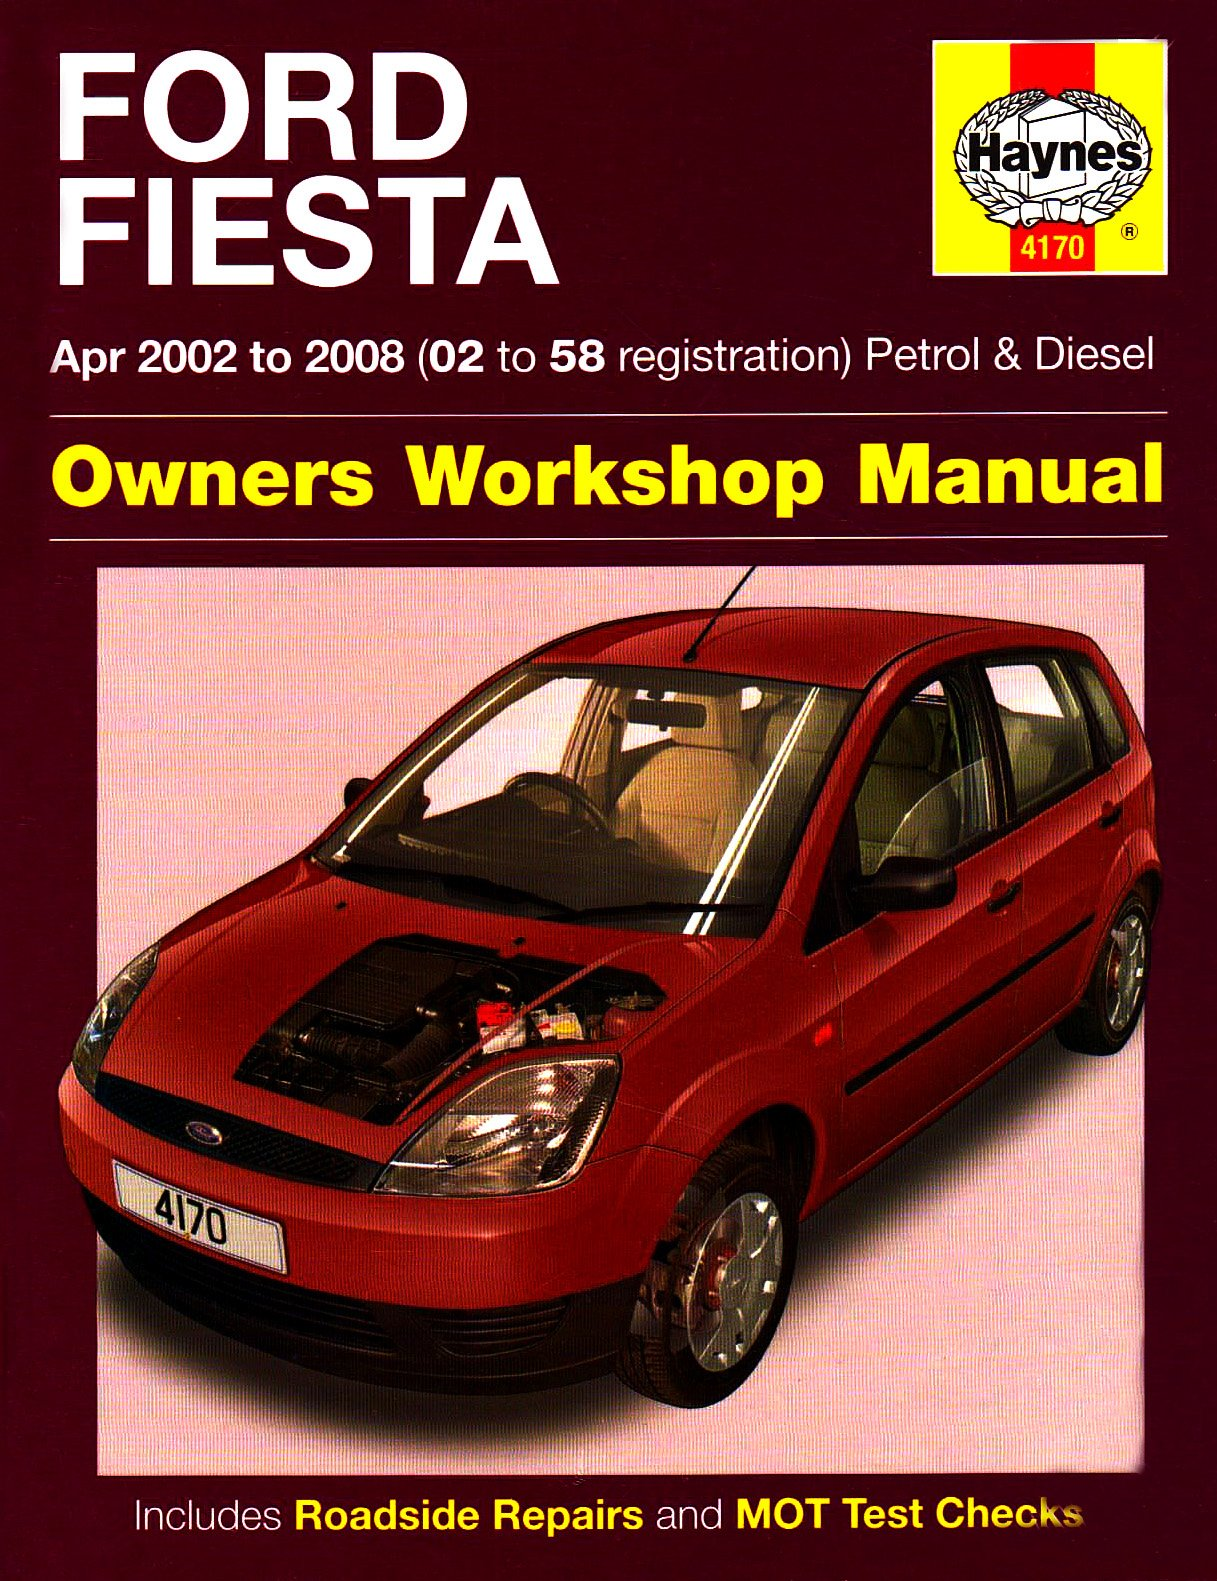 Ford Galaxy 2010 Workshop Manual 2008 E Series Wiring Diagram Ace Frehley Guitar Dc Terminal Block 1954 Chevy Bel Air Rotary 3 Position Diagrams